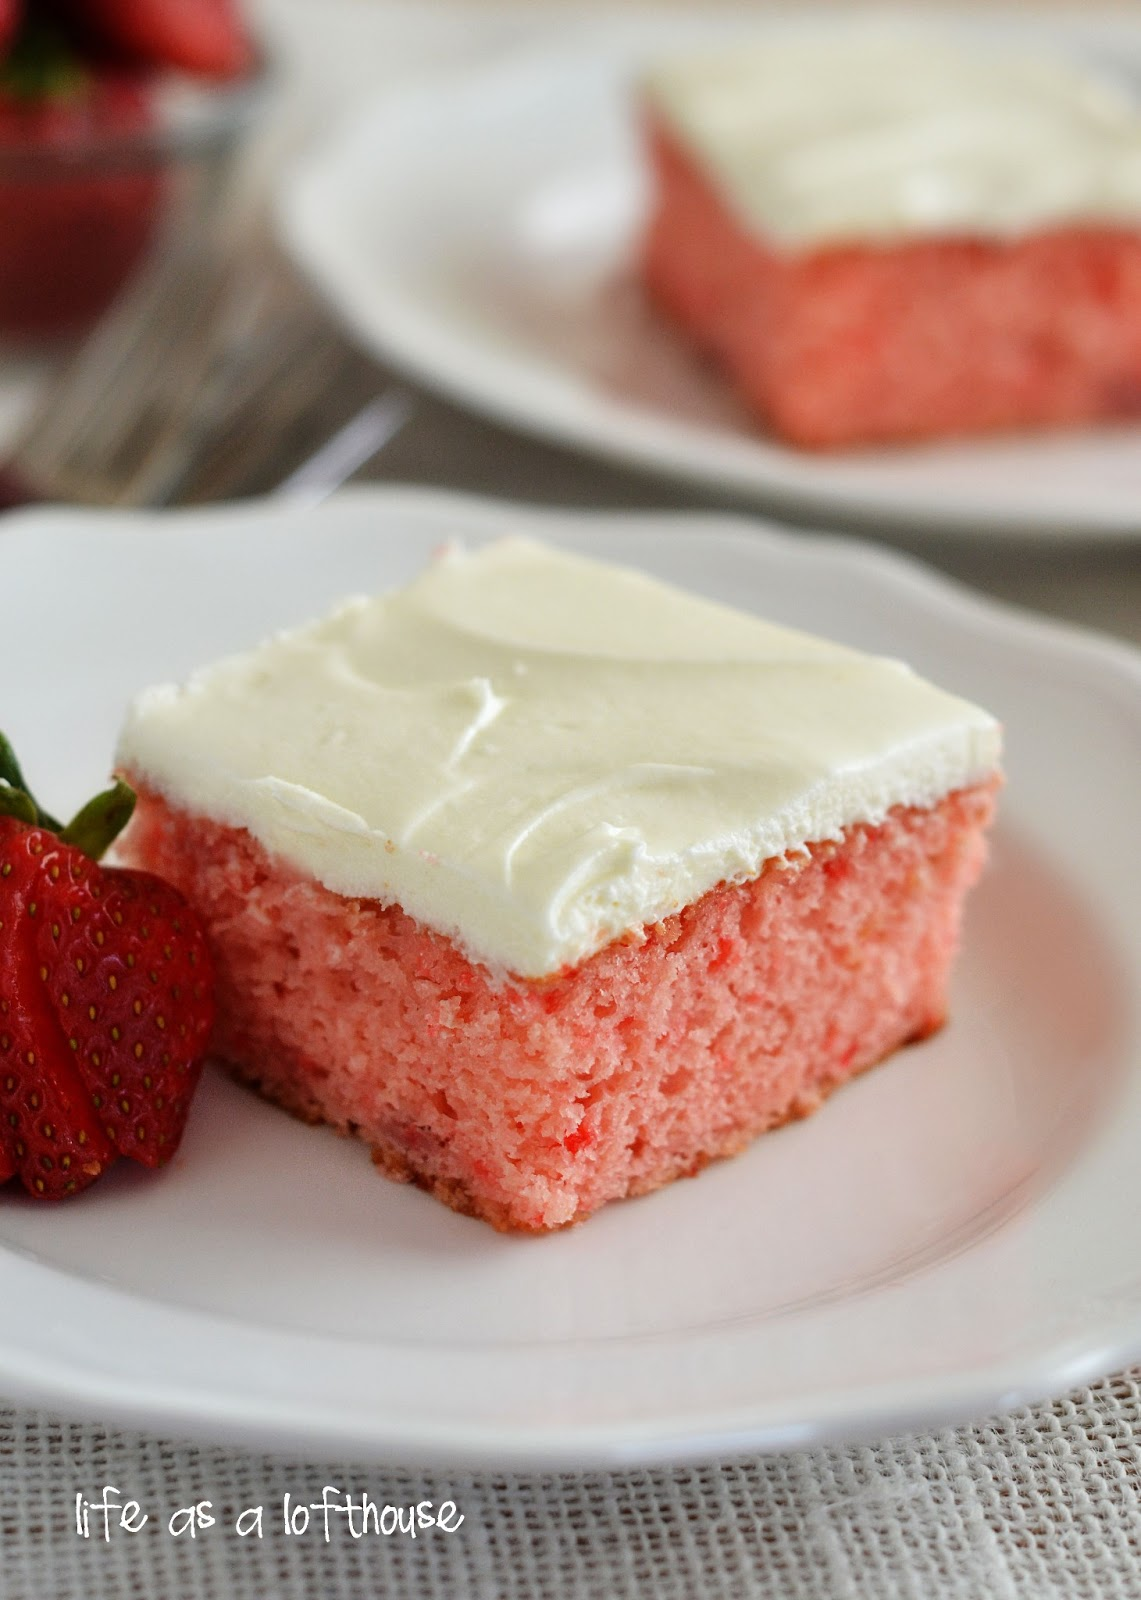 Oct 03,  · This strawberry cake is baked with a simple buttery crumb topping. This is an easy and delicious way to enjoy fresh spring strawberries. The crumb topping can be made with or without chopped nuts, or add some toasted coconut to the topping mennopoolbi.gqted Fat 7g: 37%.